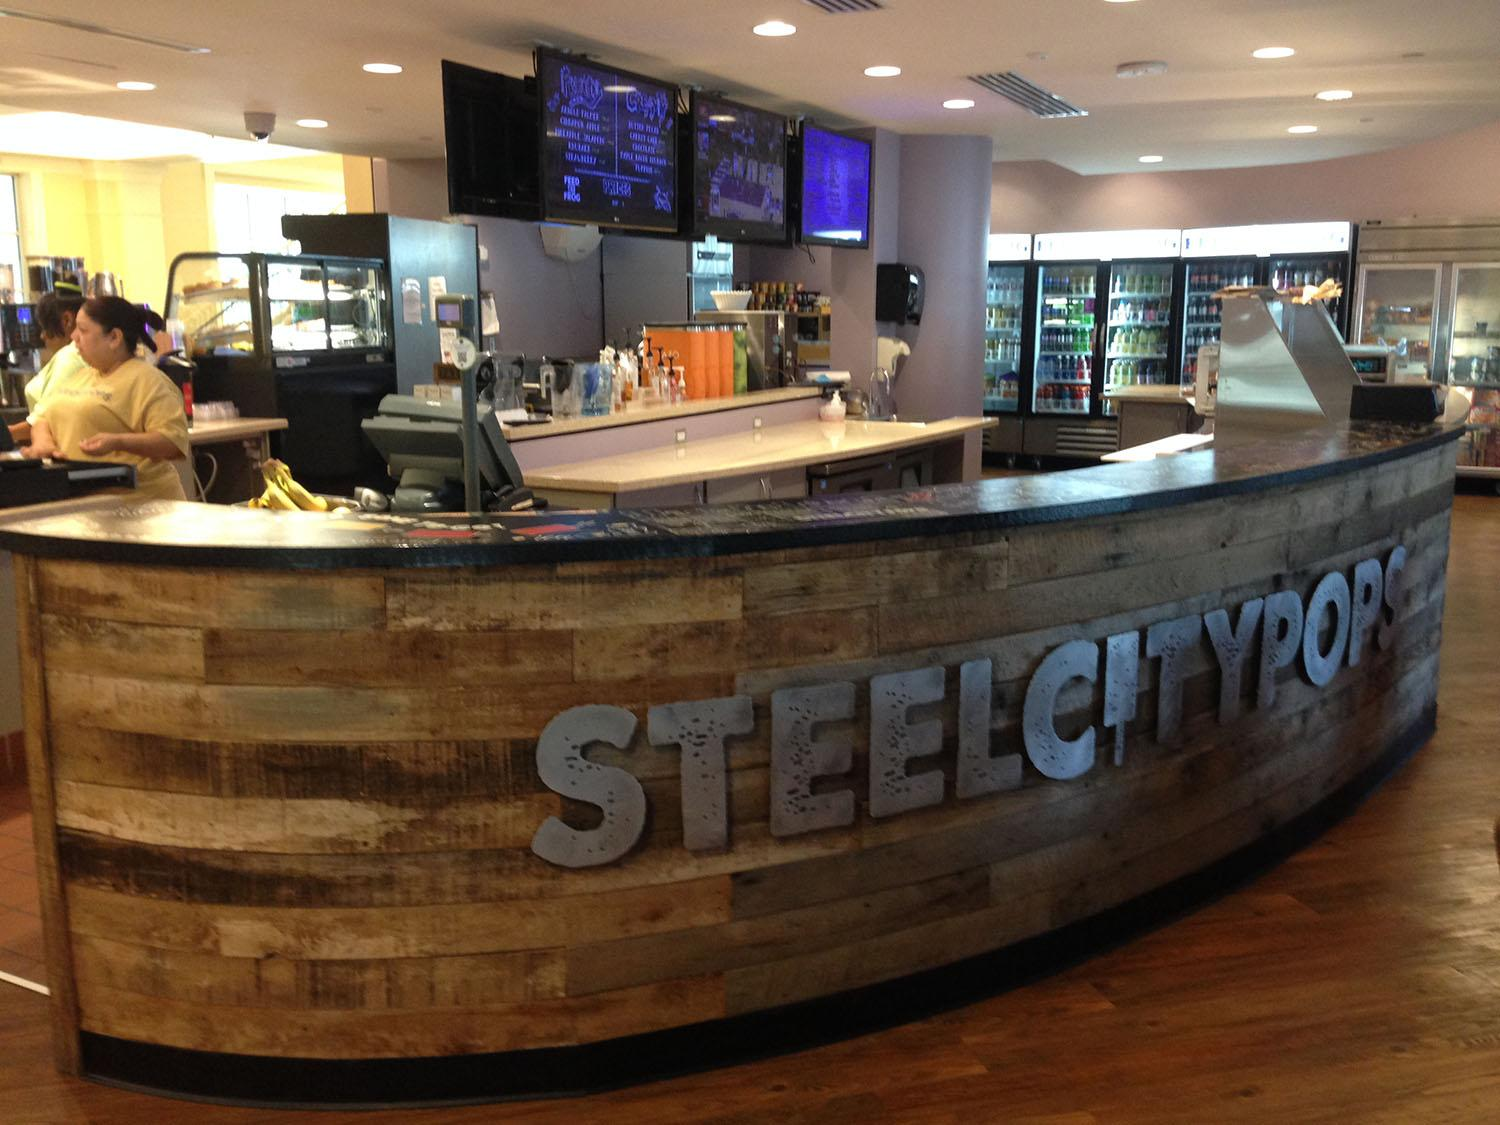 Steel City Pops was added to Union Grounds in August 2015.